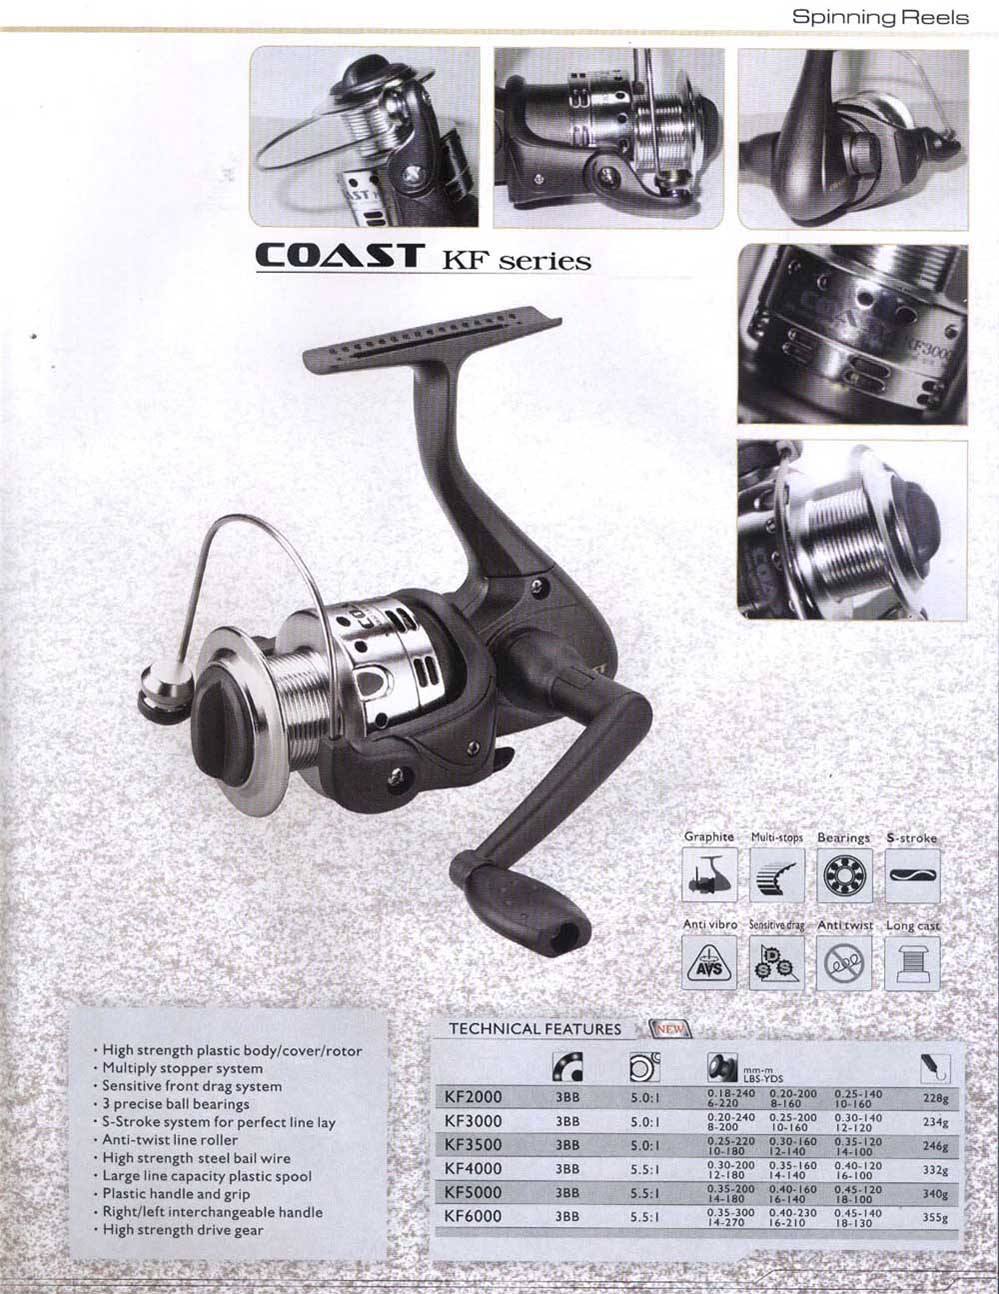 Spinning reel- KF